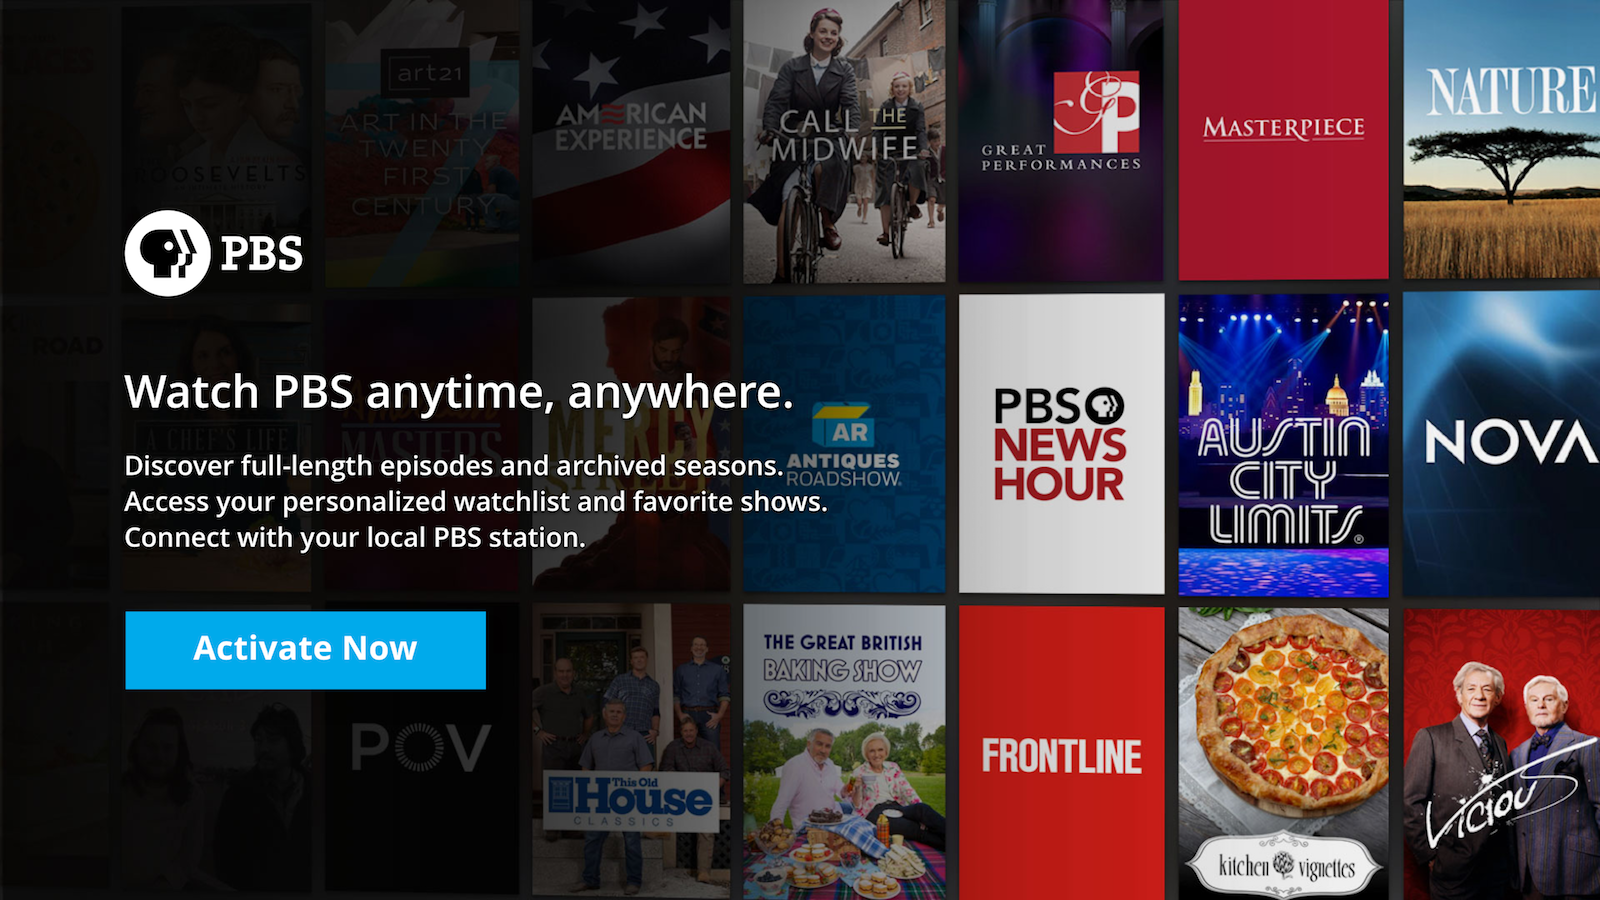 The Pbs Video App For Samsung Smart Tv Pbs Help